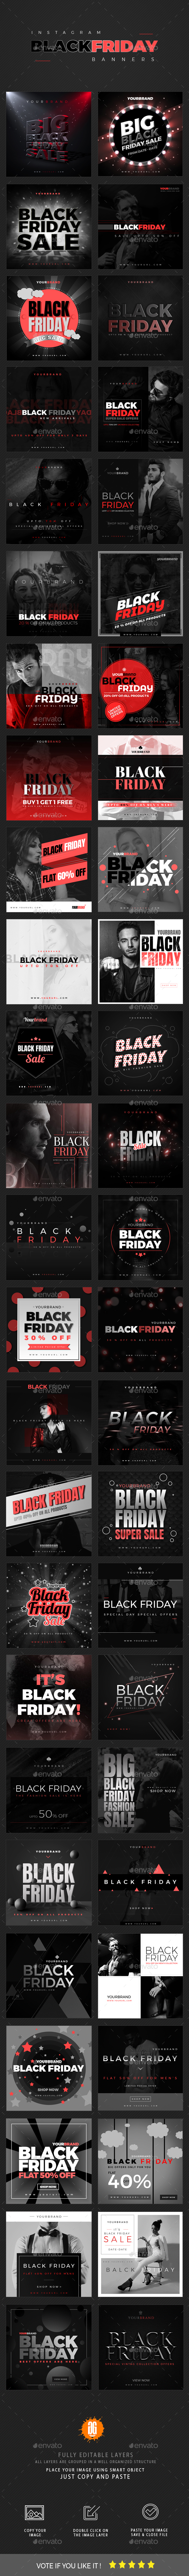 GraphicRiver 50 Black Friday Instagram Banners 20867383